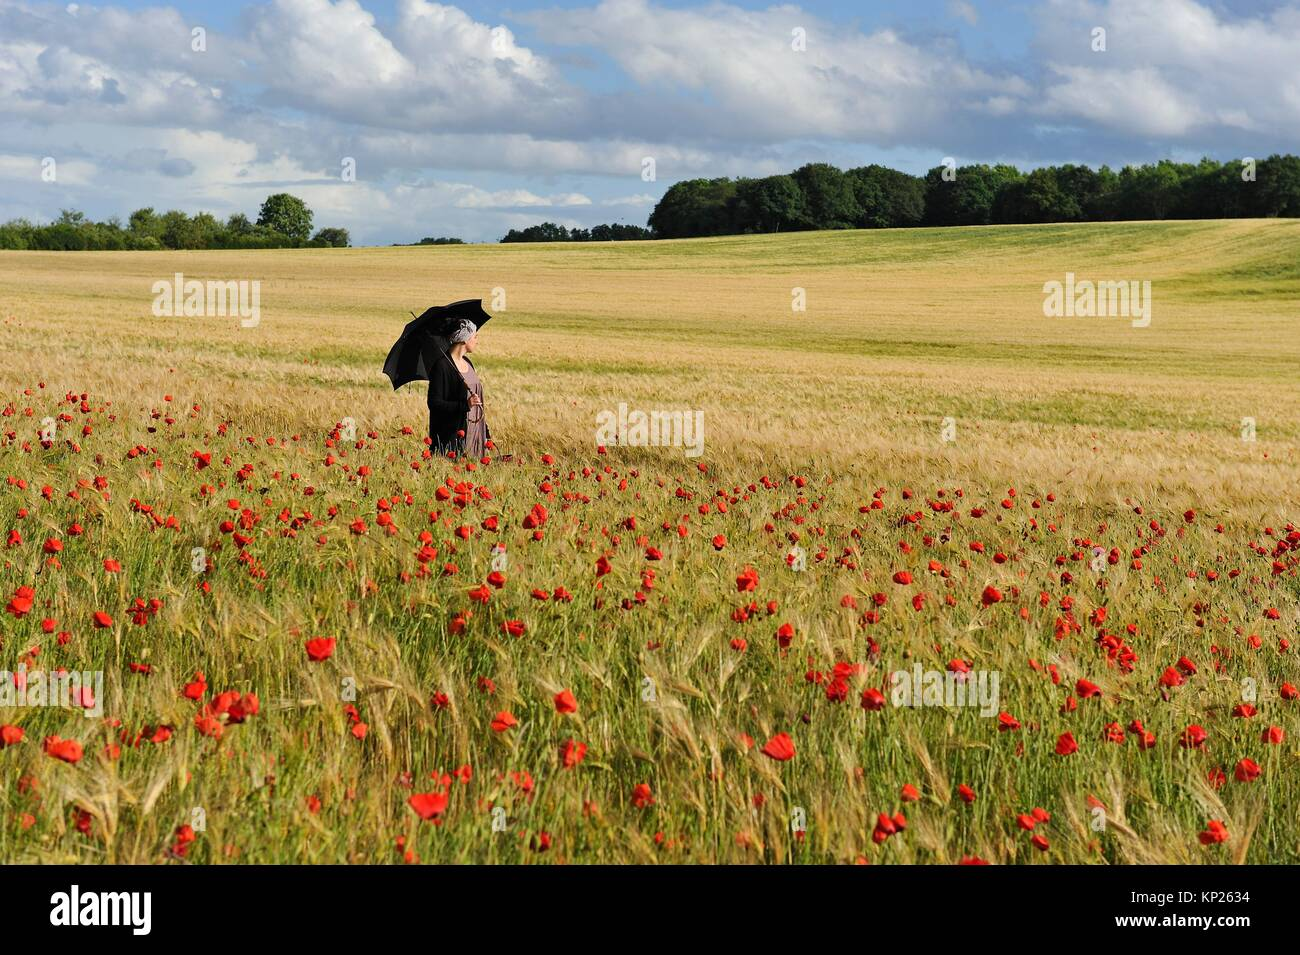 young woman with sunshade in a cereal field dotted with poppies, France, Europe. - Stock Image